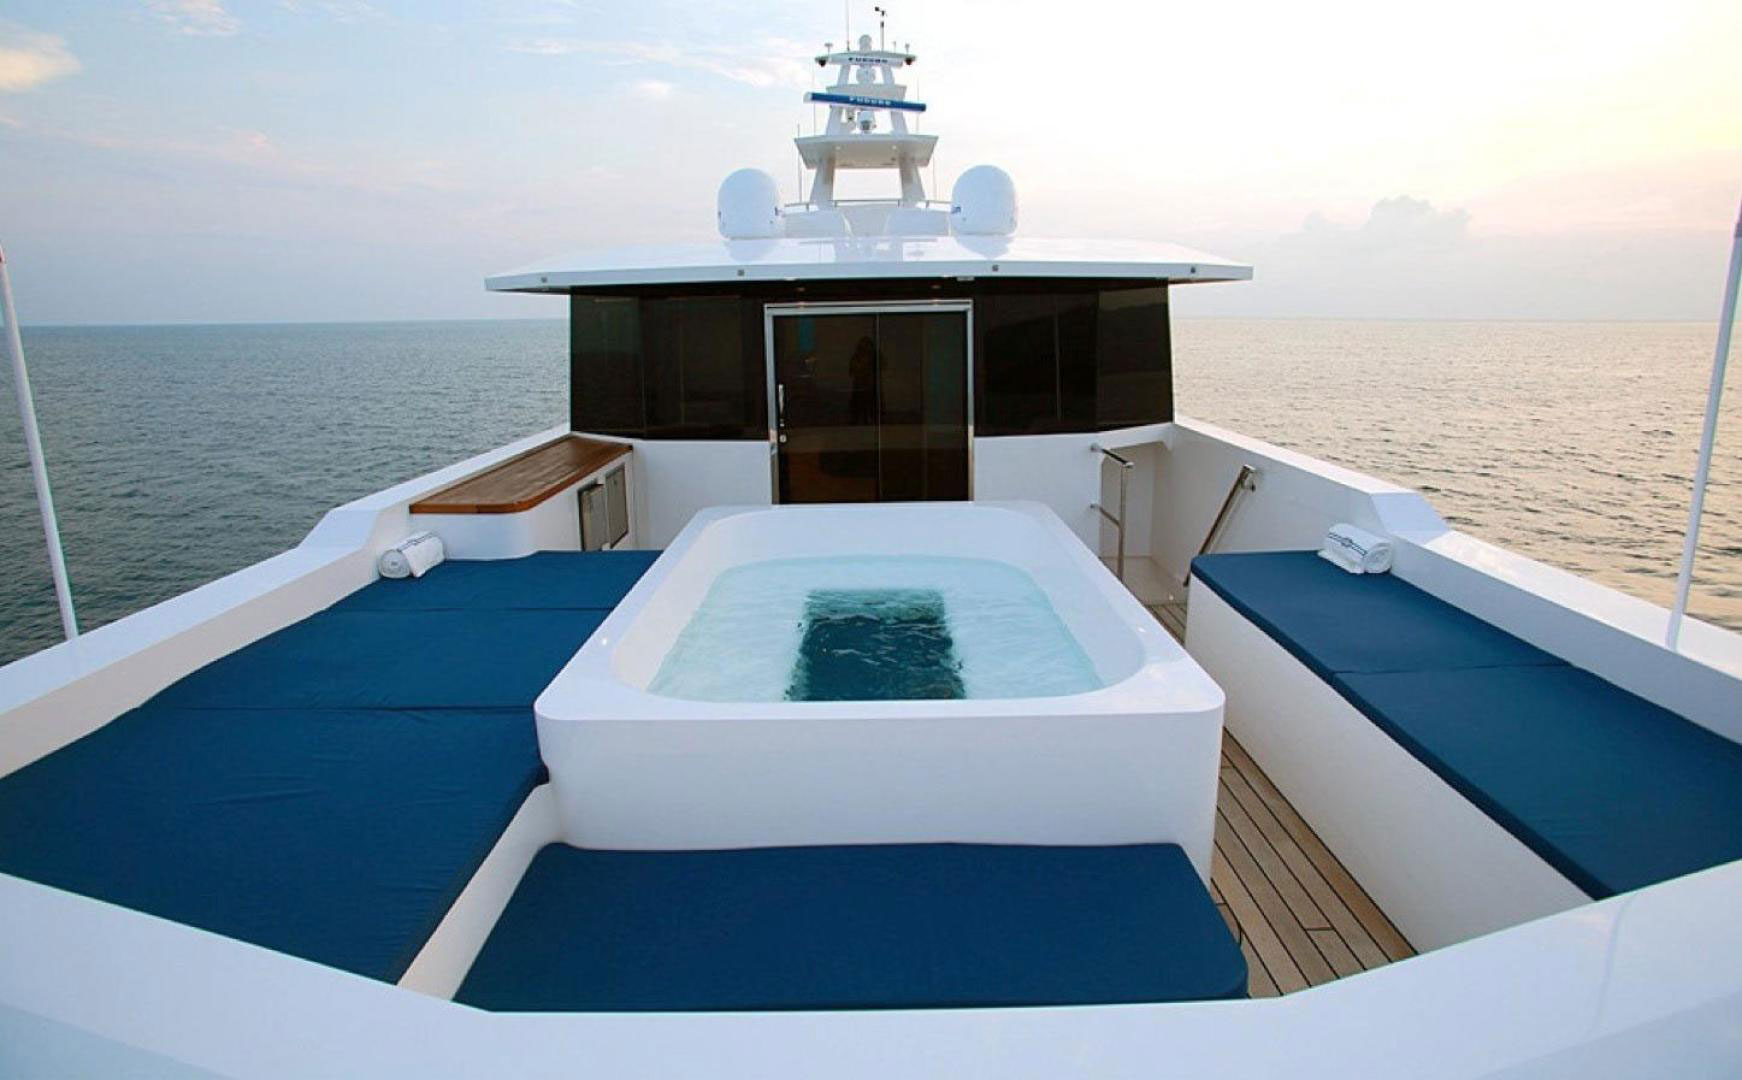 150-ft.-Luxury-Power-Yacht-–-Up-to-200-People7